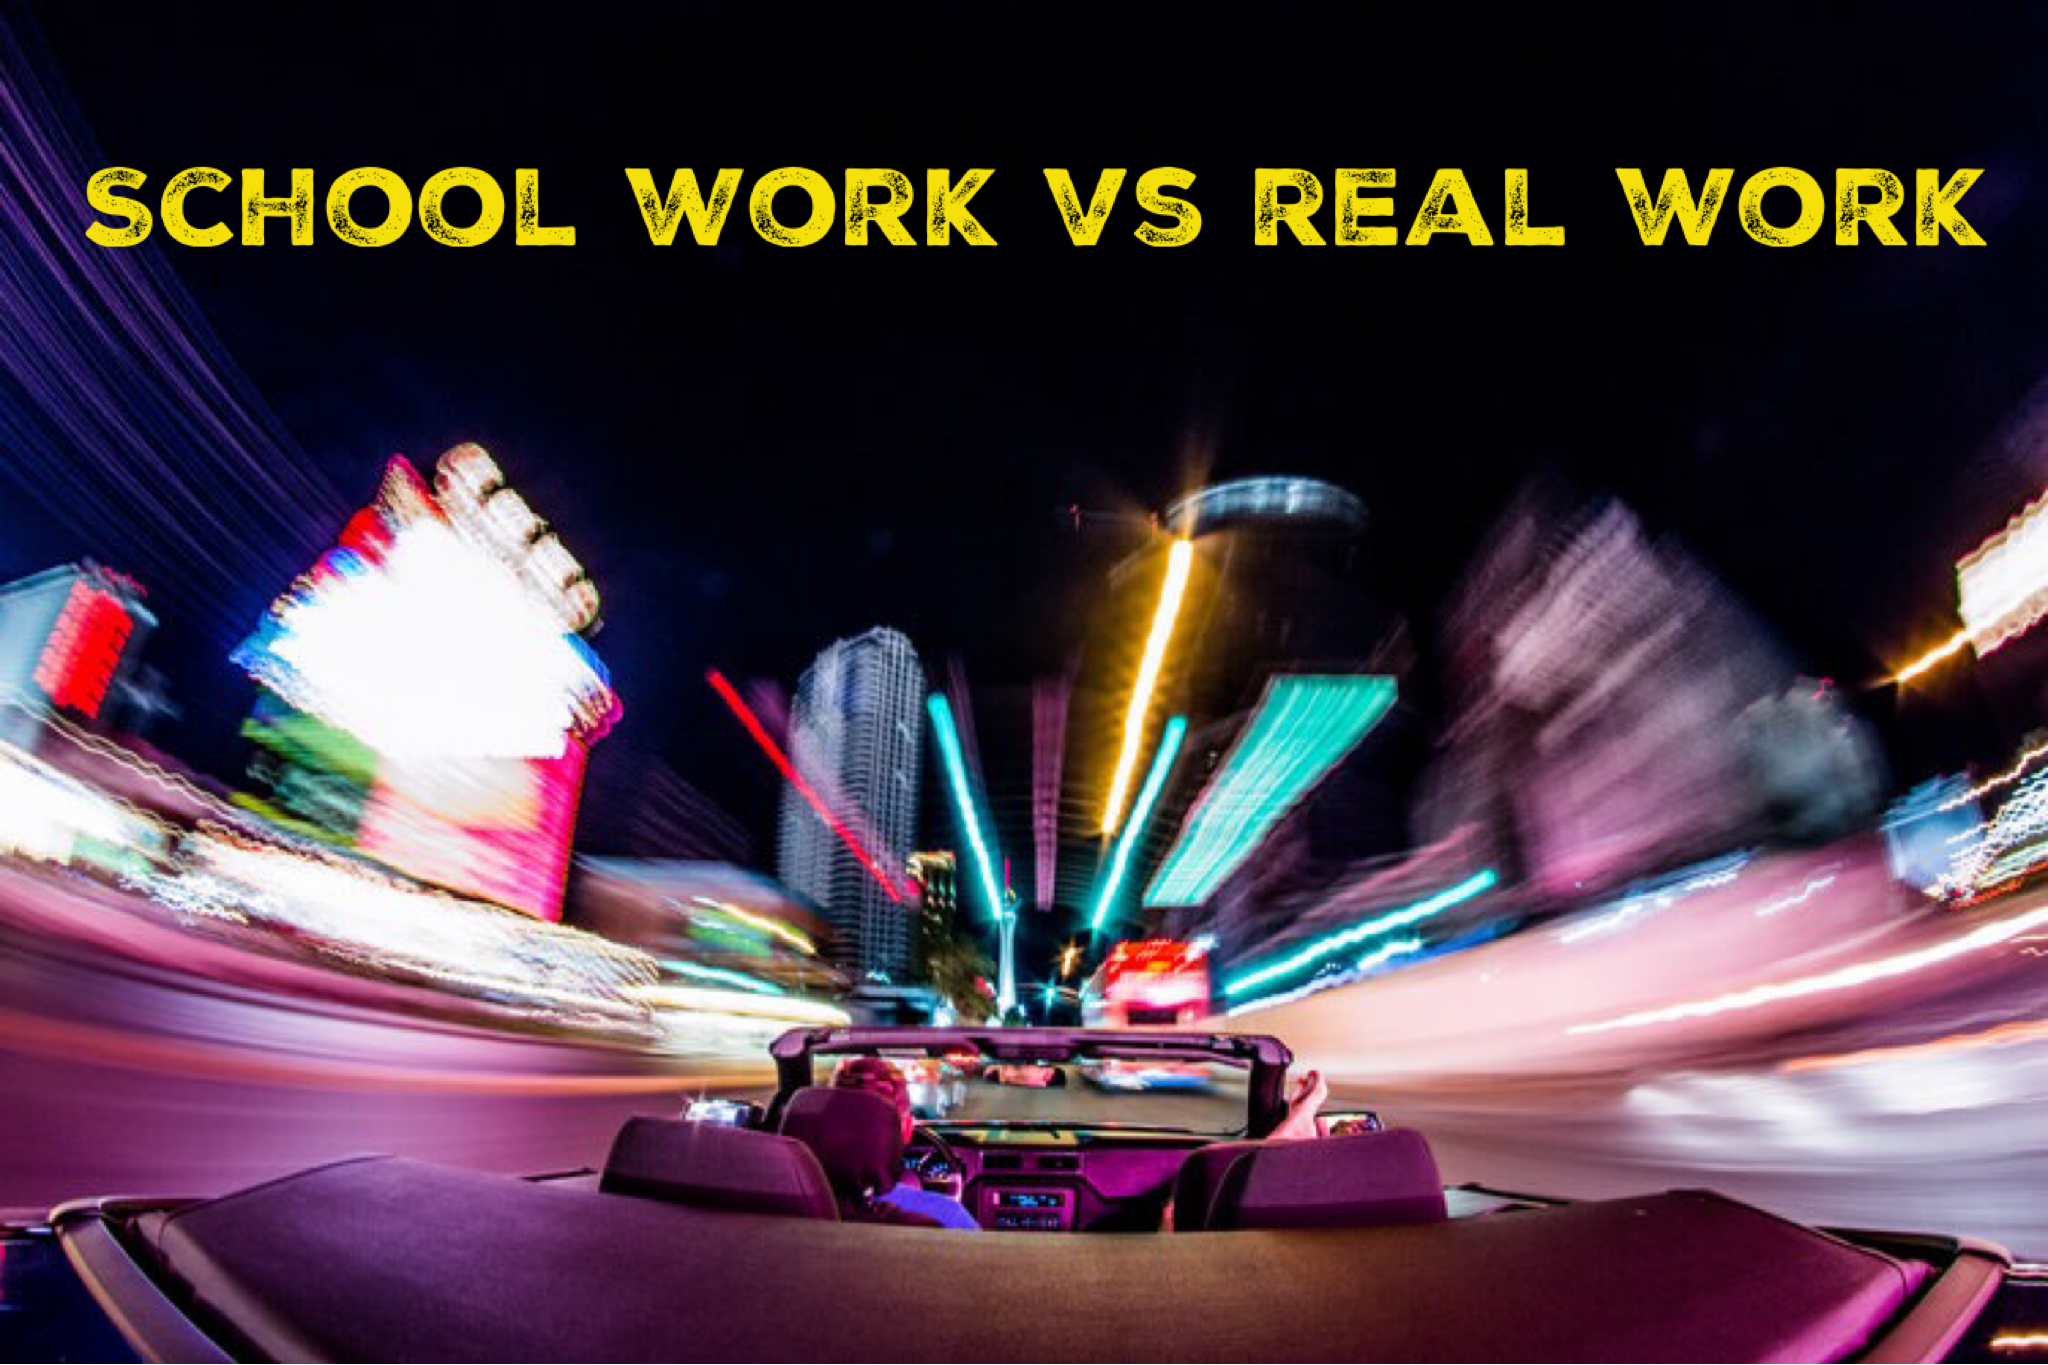 School Work vs Real Work